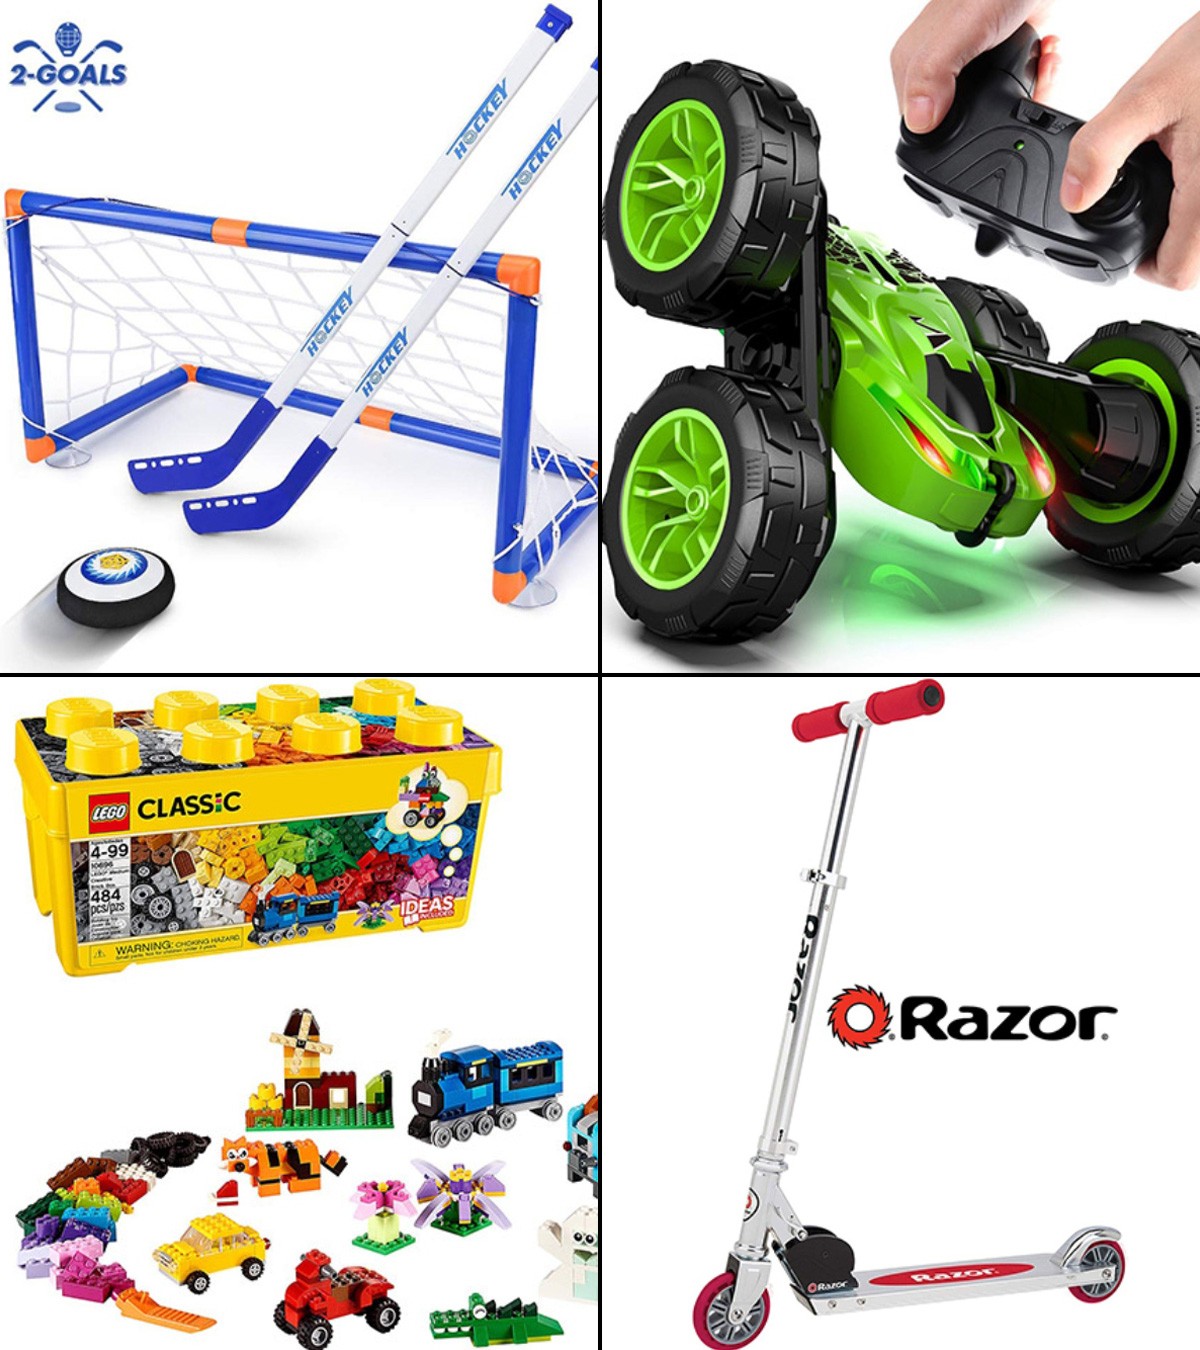 19 Best Toys For 5 6 And 7 Year Old Boys To Buy In 2021